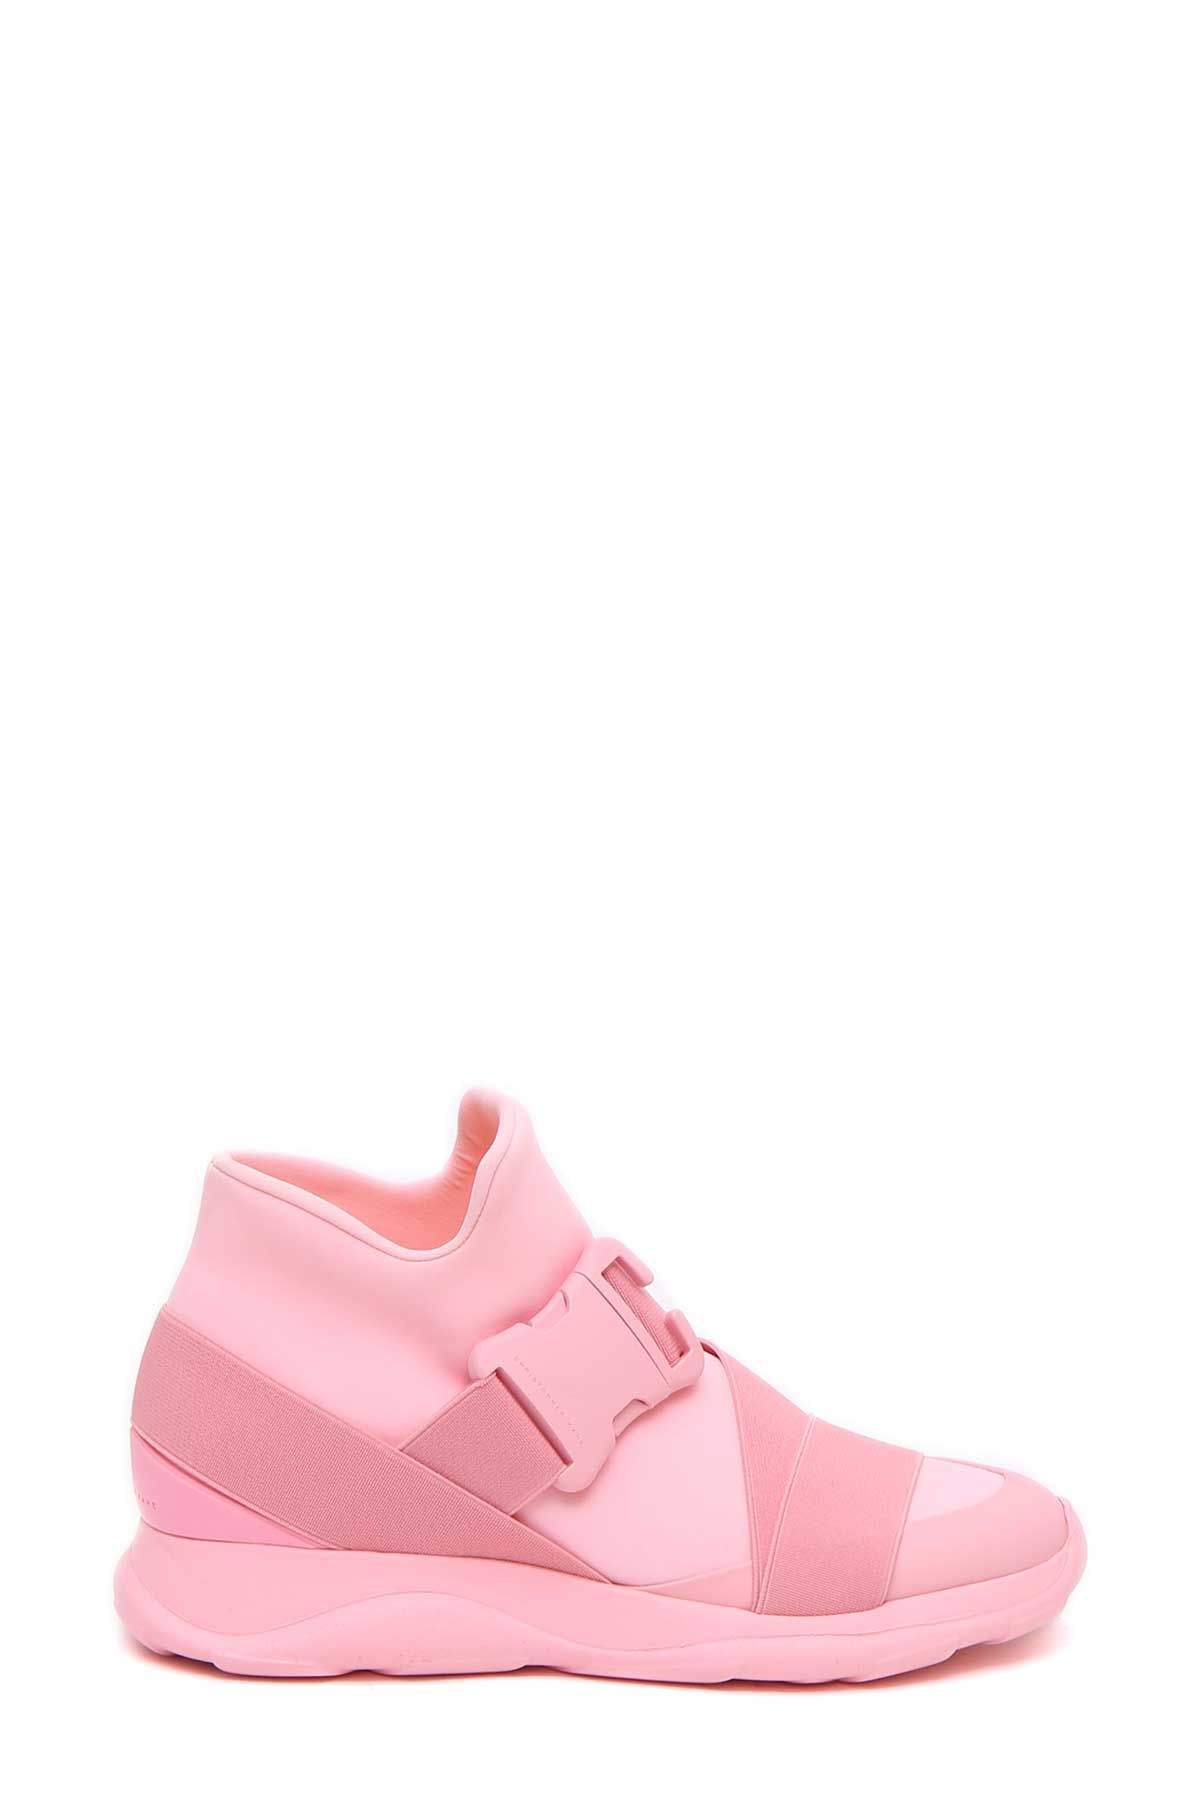 Christopher Kane High-Top Sneakers with Leather Gr. EU 40 DTvimzr